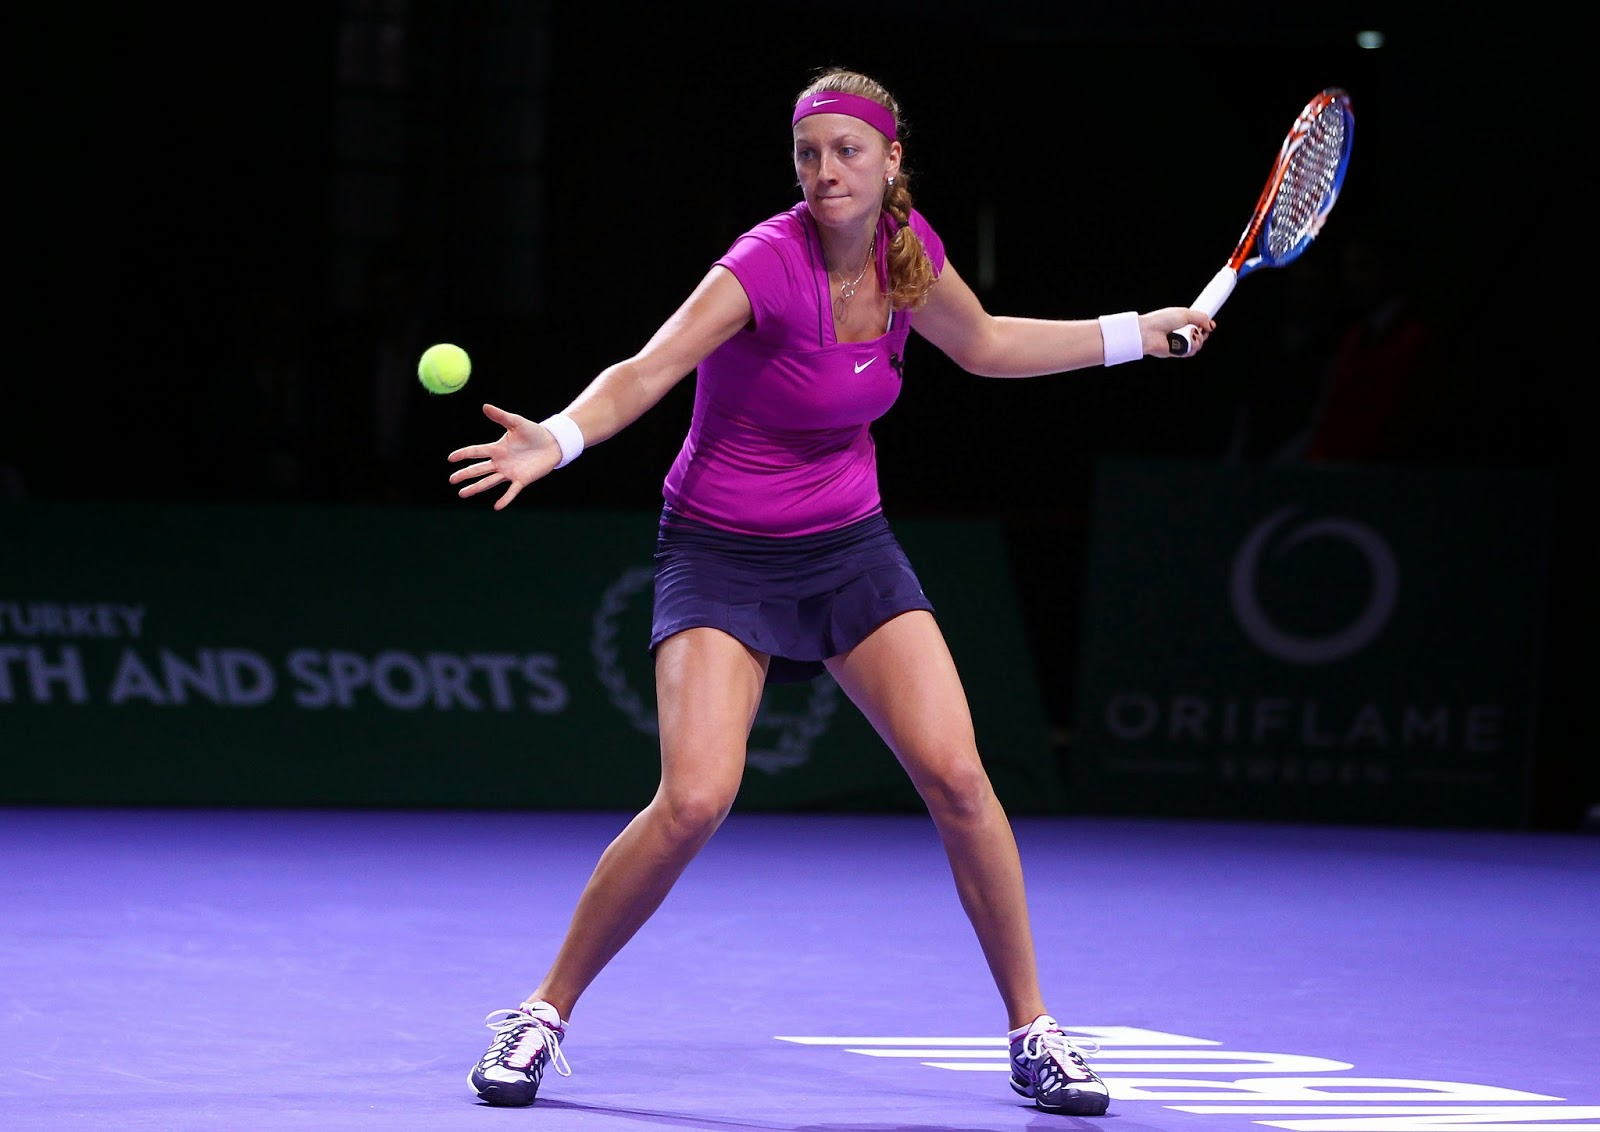 Top 10 Women Tennis Players With Hottest Body - Wagz - Hot ...